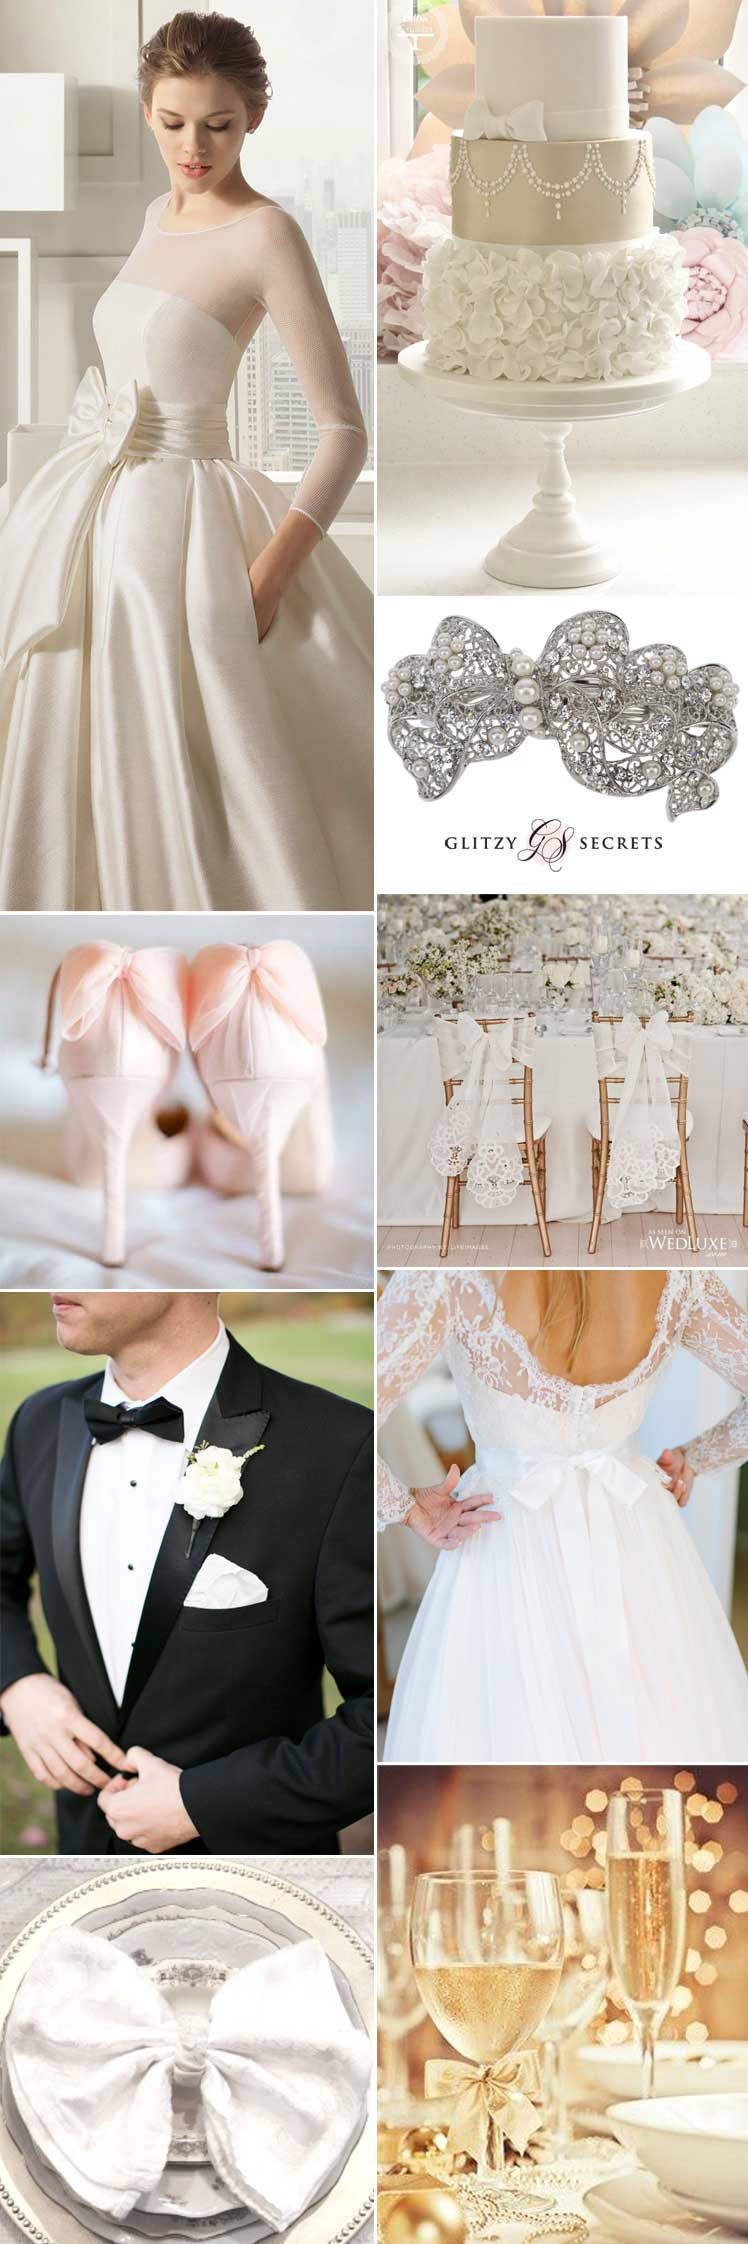 Bow theme wedding ideas